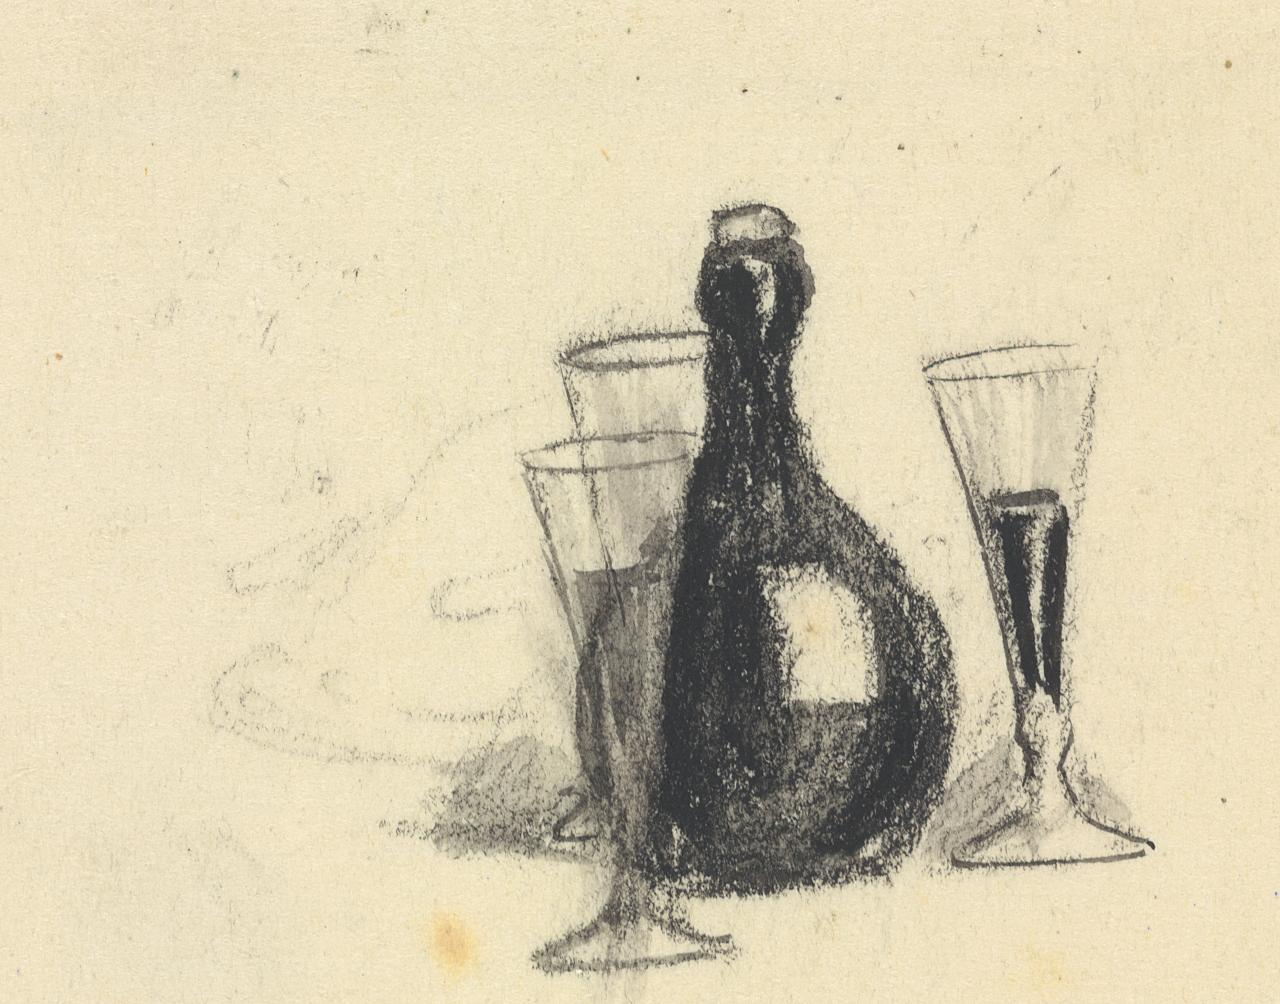 Chapter heading (Wine bottle and three glasses)